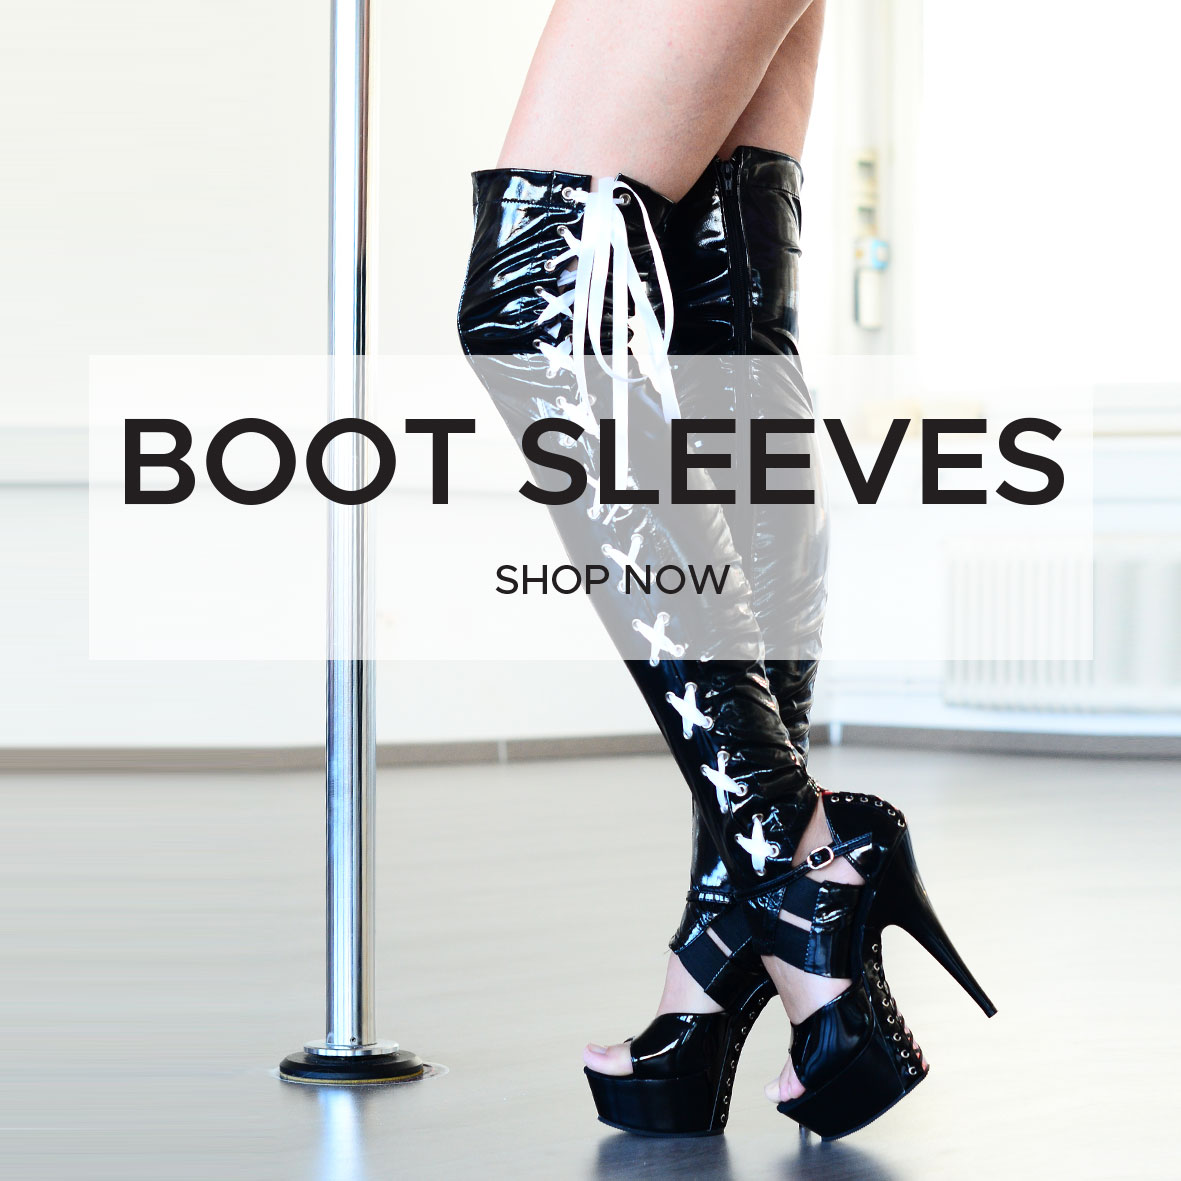 boomkats pole dance clothes boot sleeves